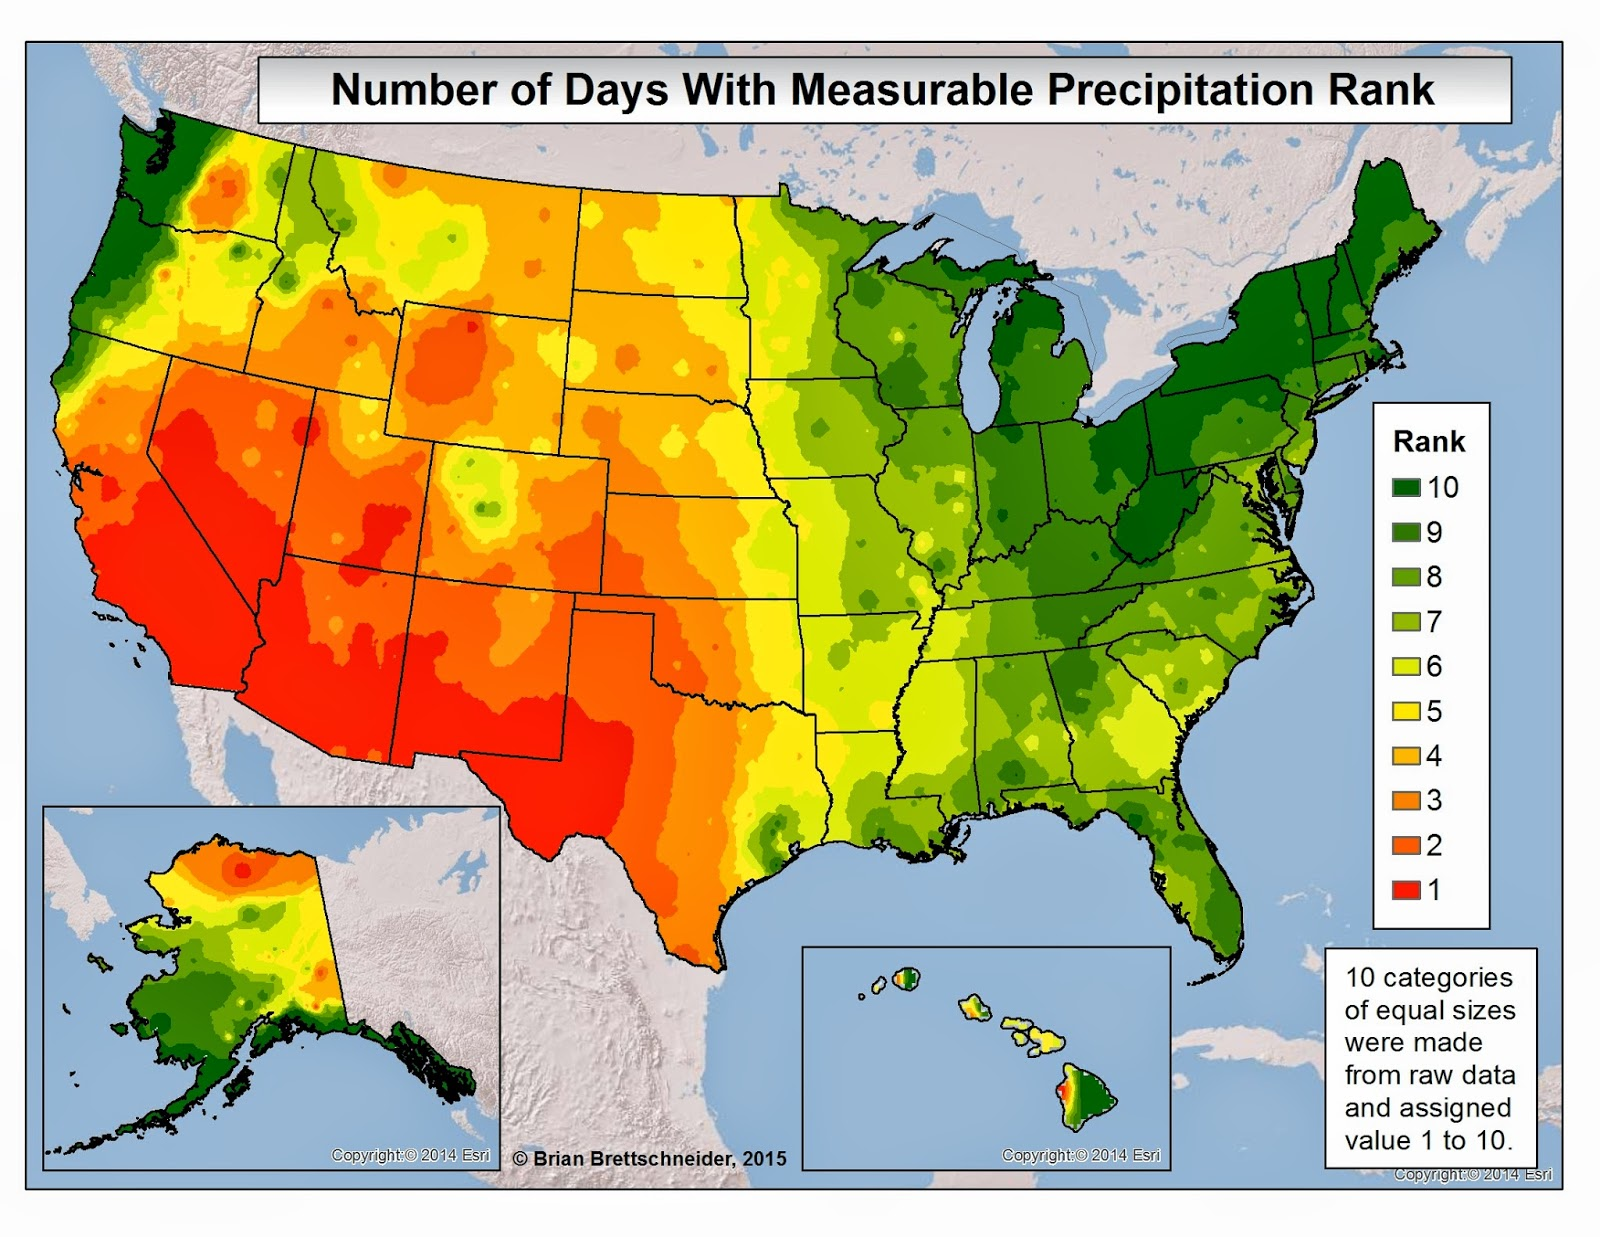 Brian Bs Climate Blog Dreary Weather - Annual precipitation map us